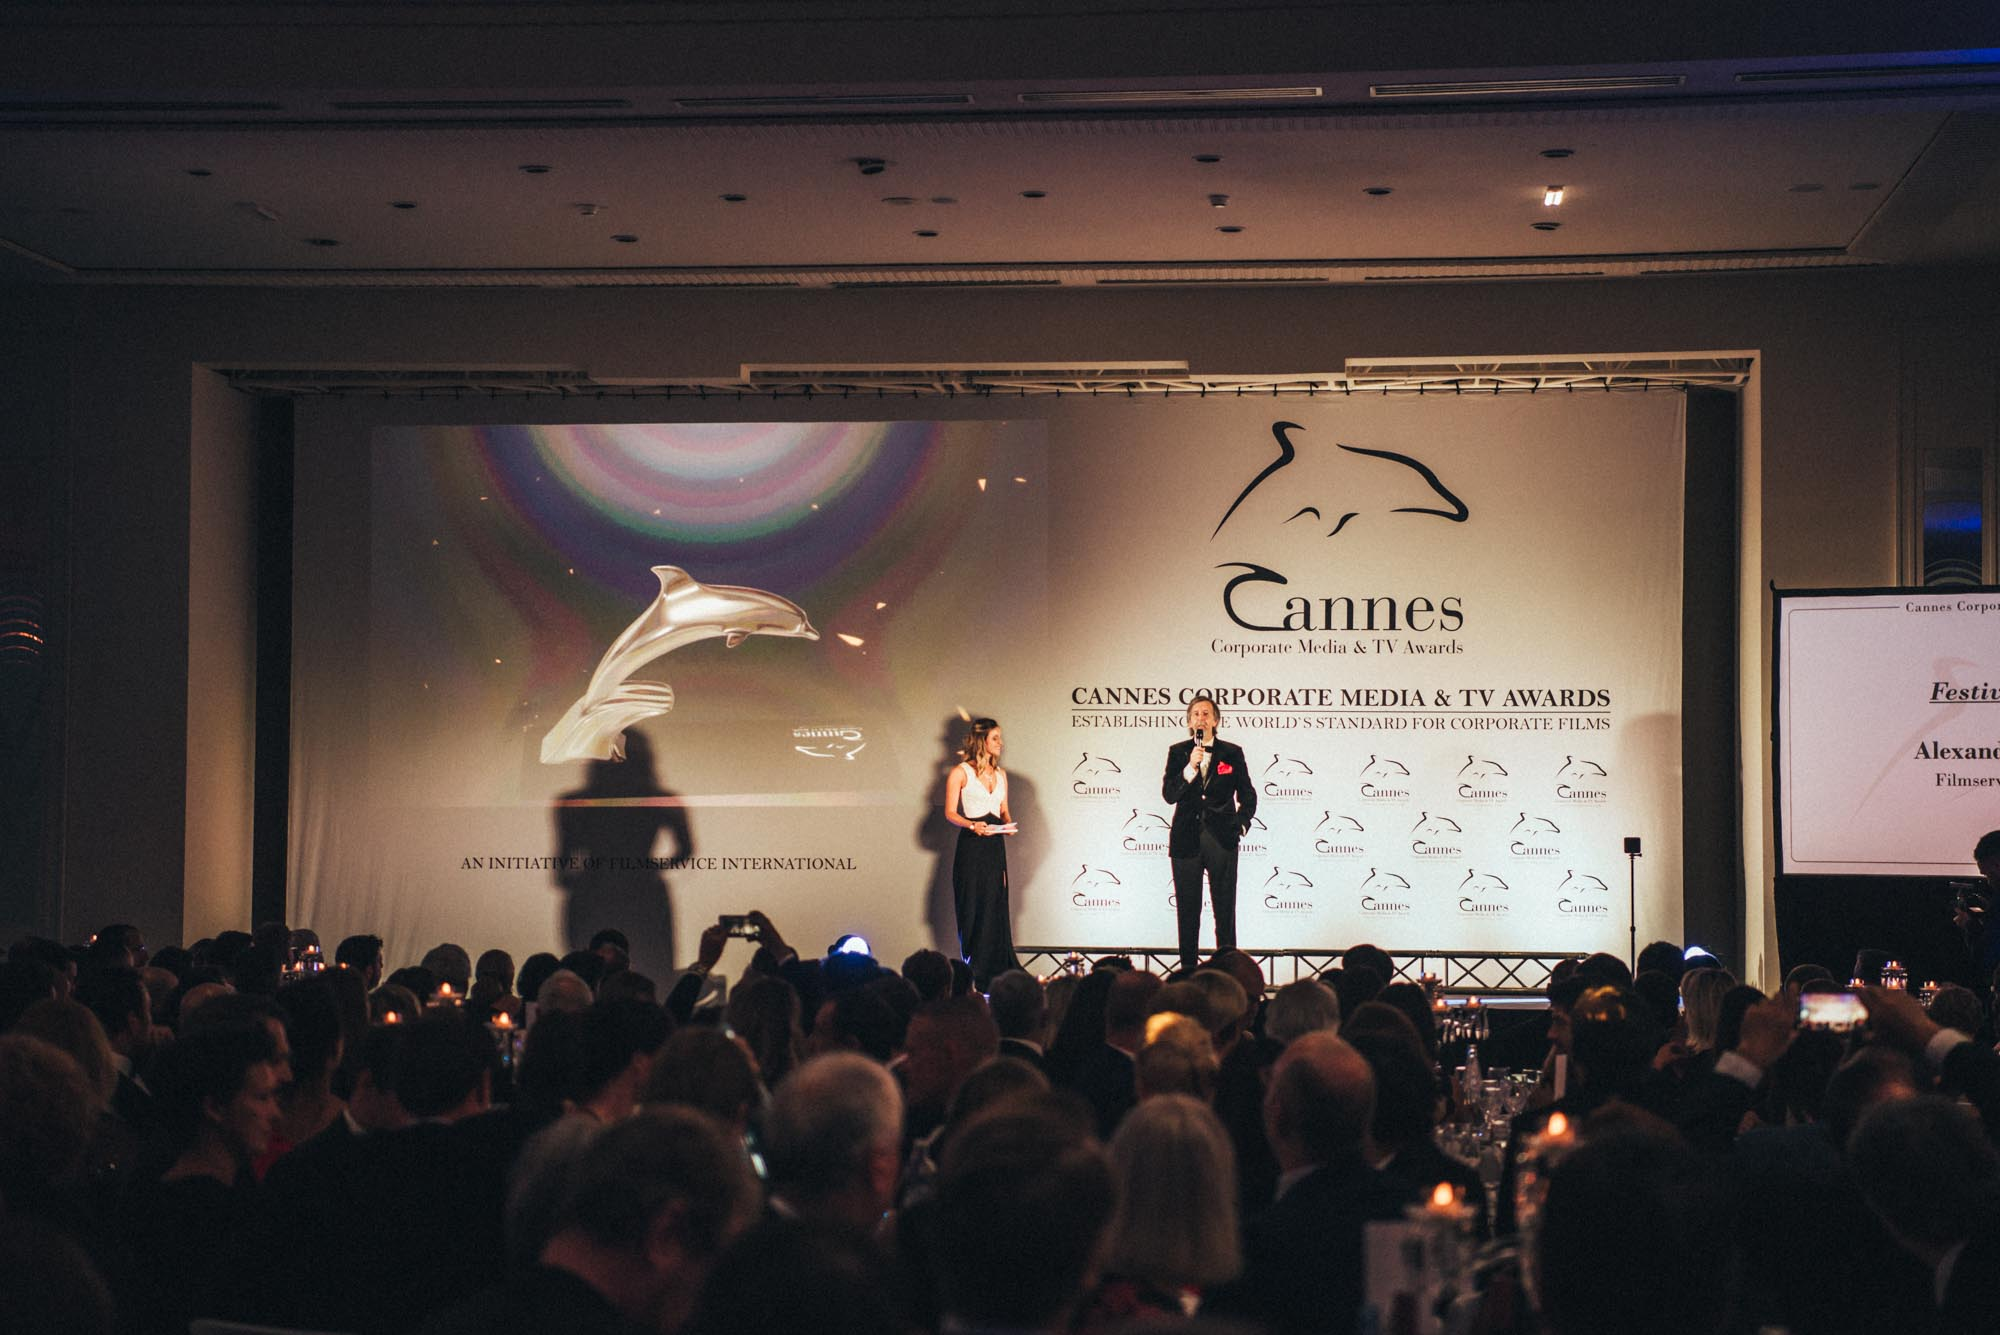 Louise Houghton Cannes Corporates 6